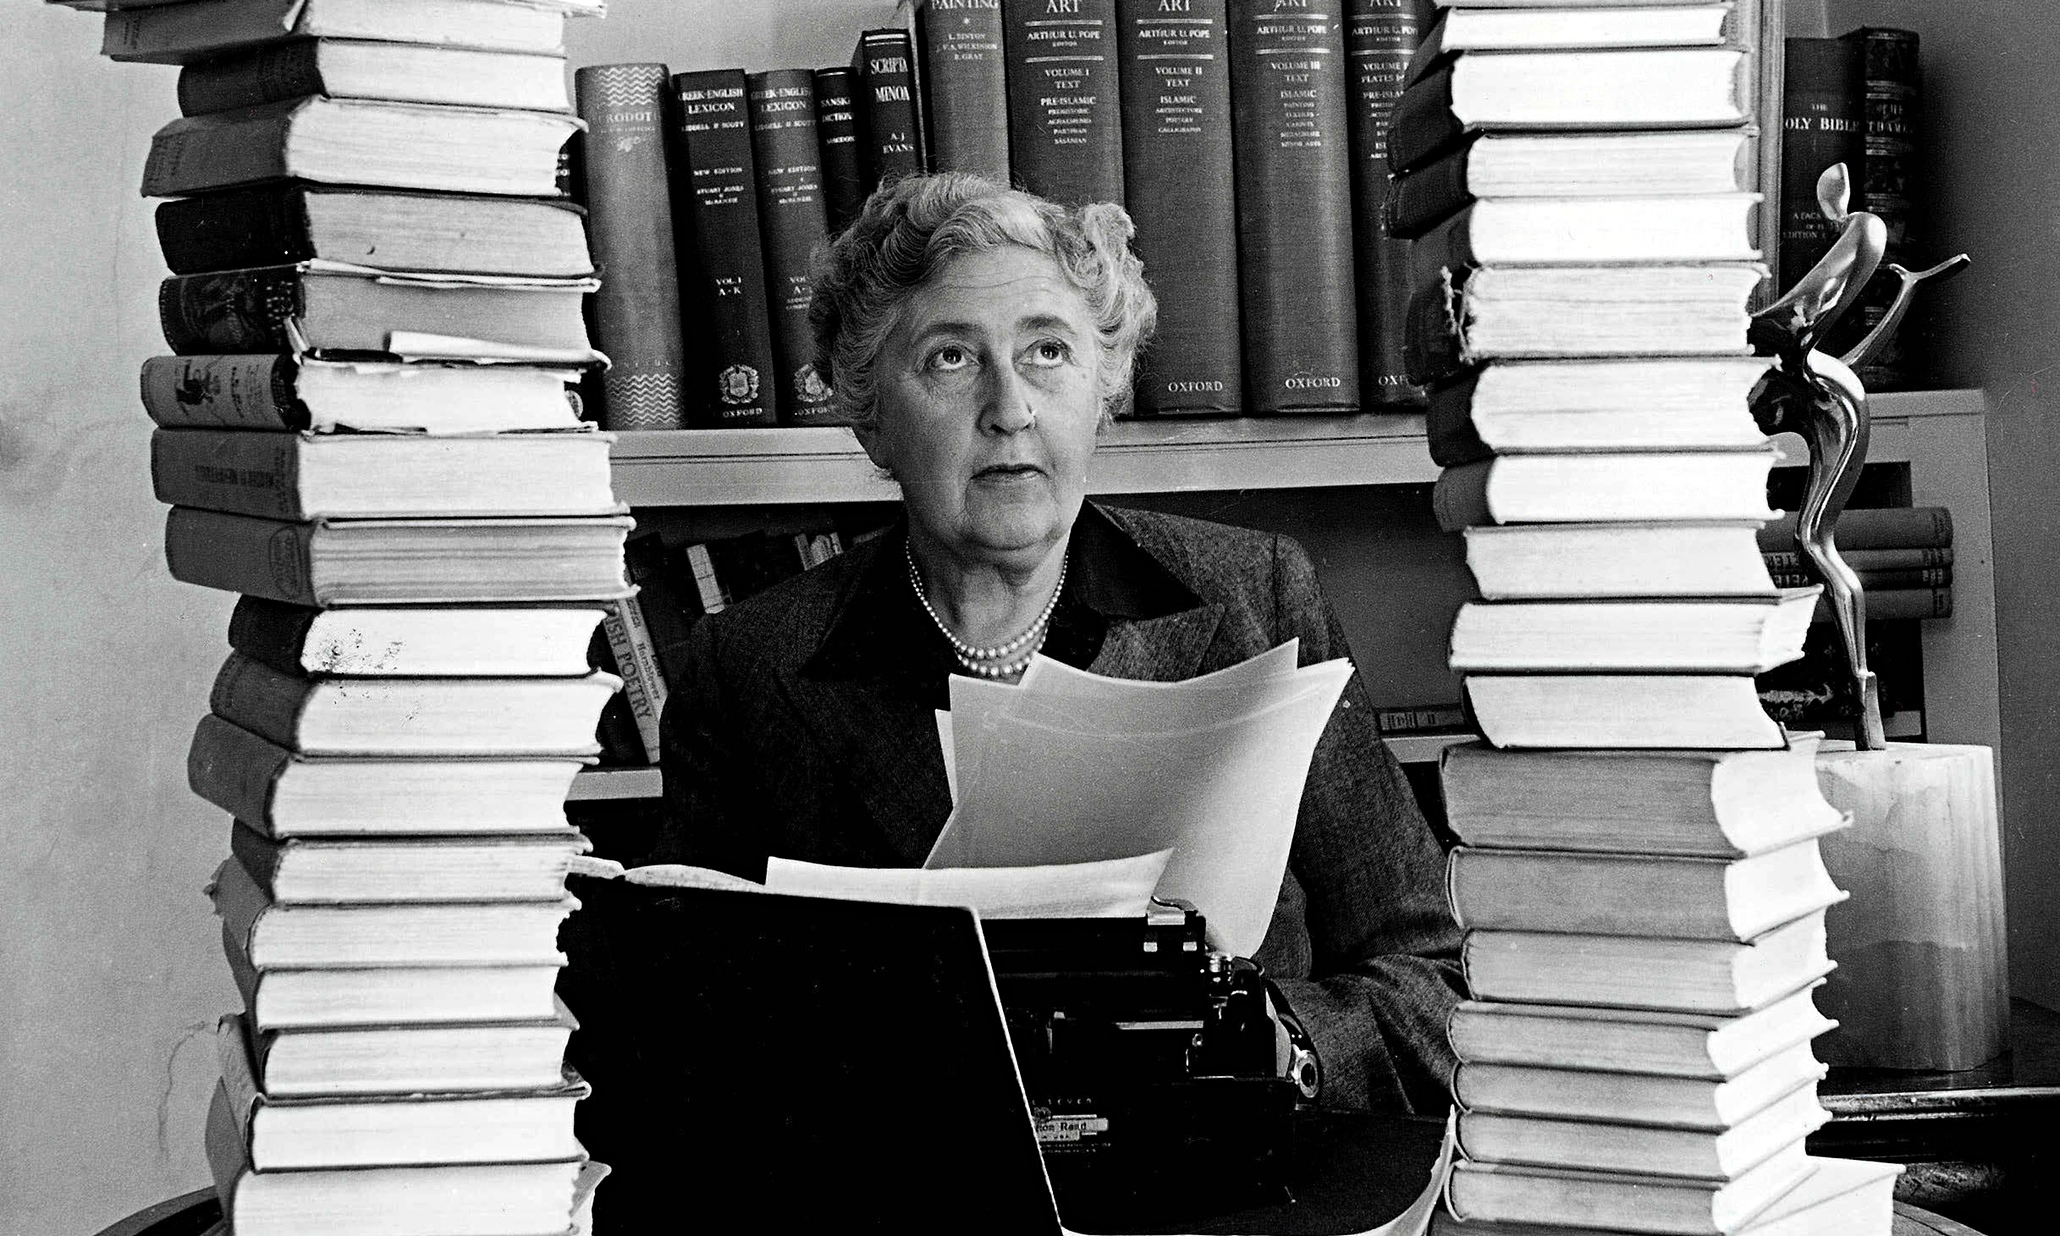 https://static.guim.co.uk/sys-images/Guardian/Pix/pictures/2015/4/27/1430140140647/Agatha-Christie-surrounde-009.jpg